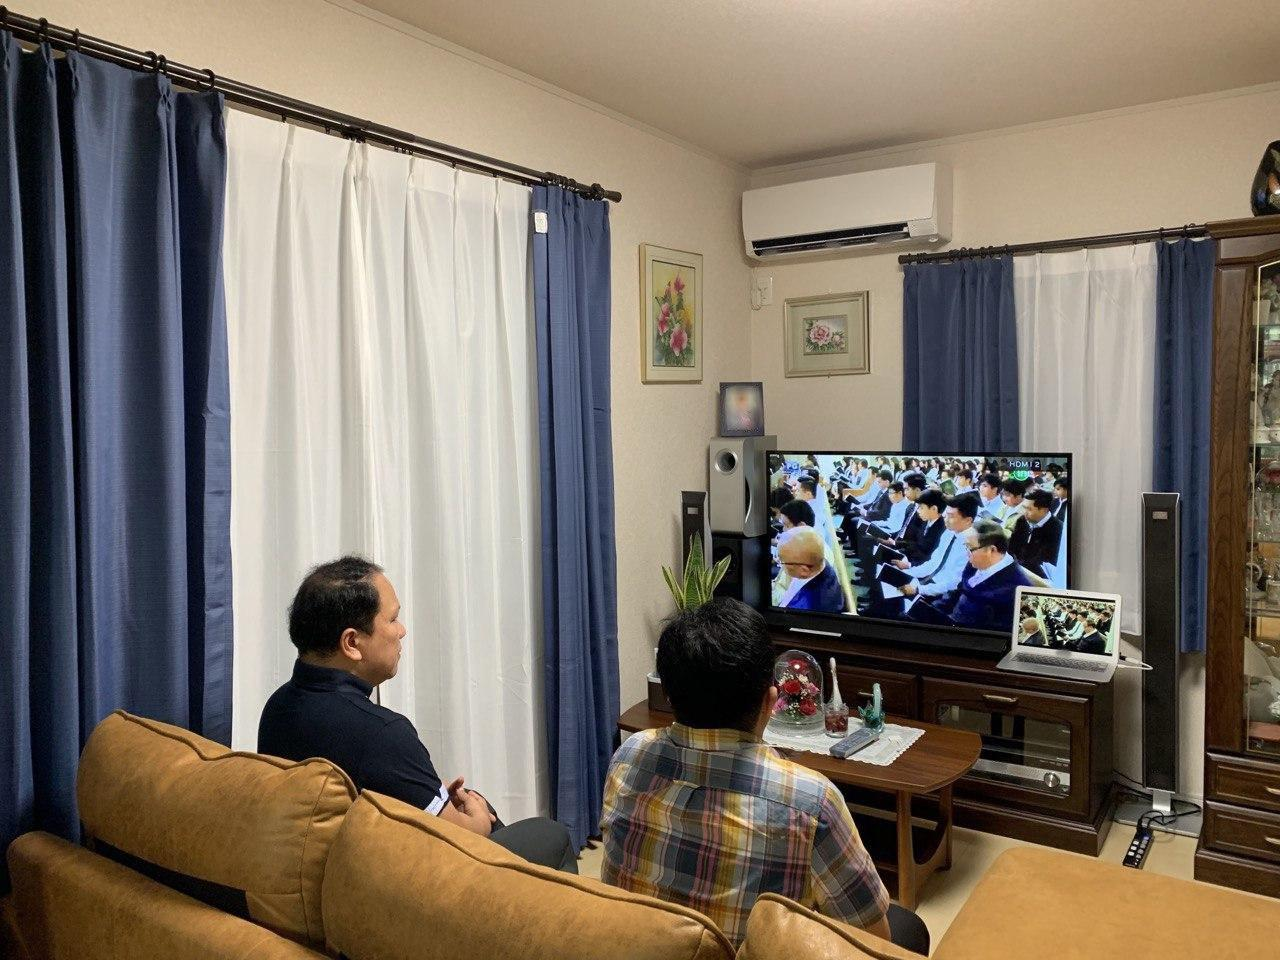 Districts in Japan hold online evangelical mission